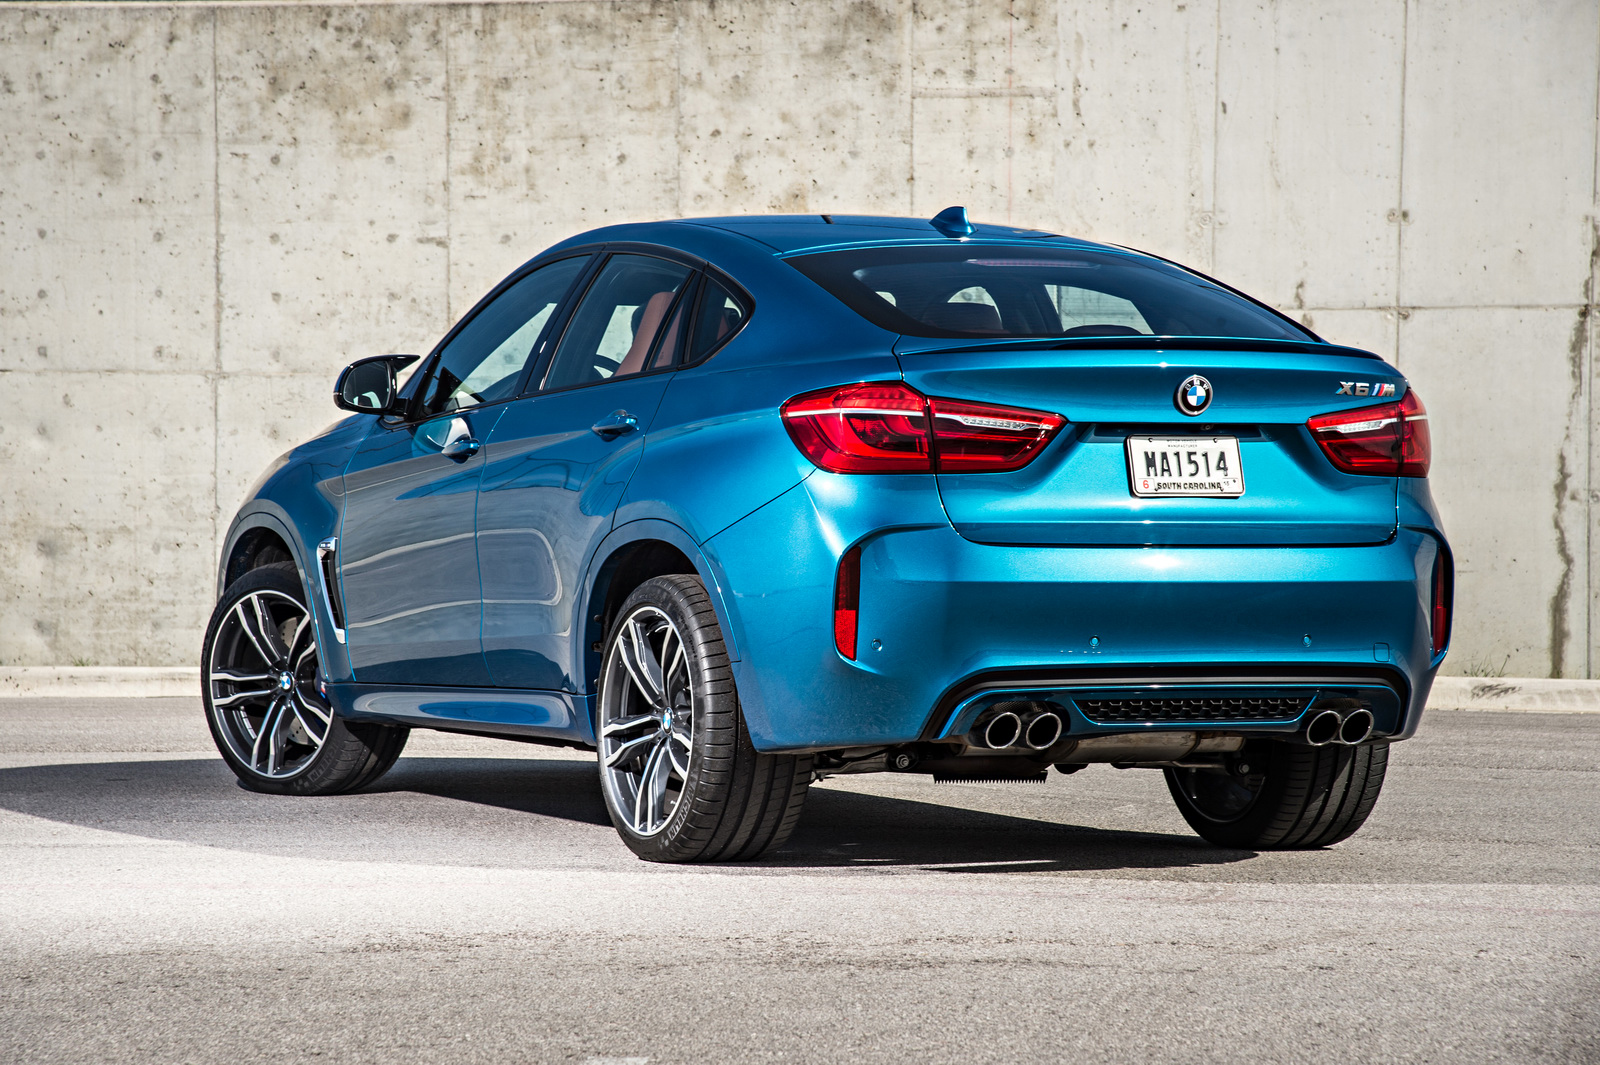 2015 Bmw X6 M Returns In New Mega Gallery 148 Photos Carscoops